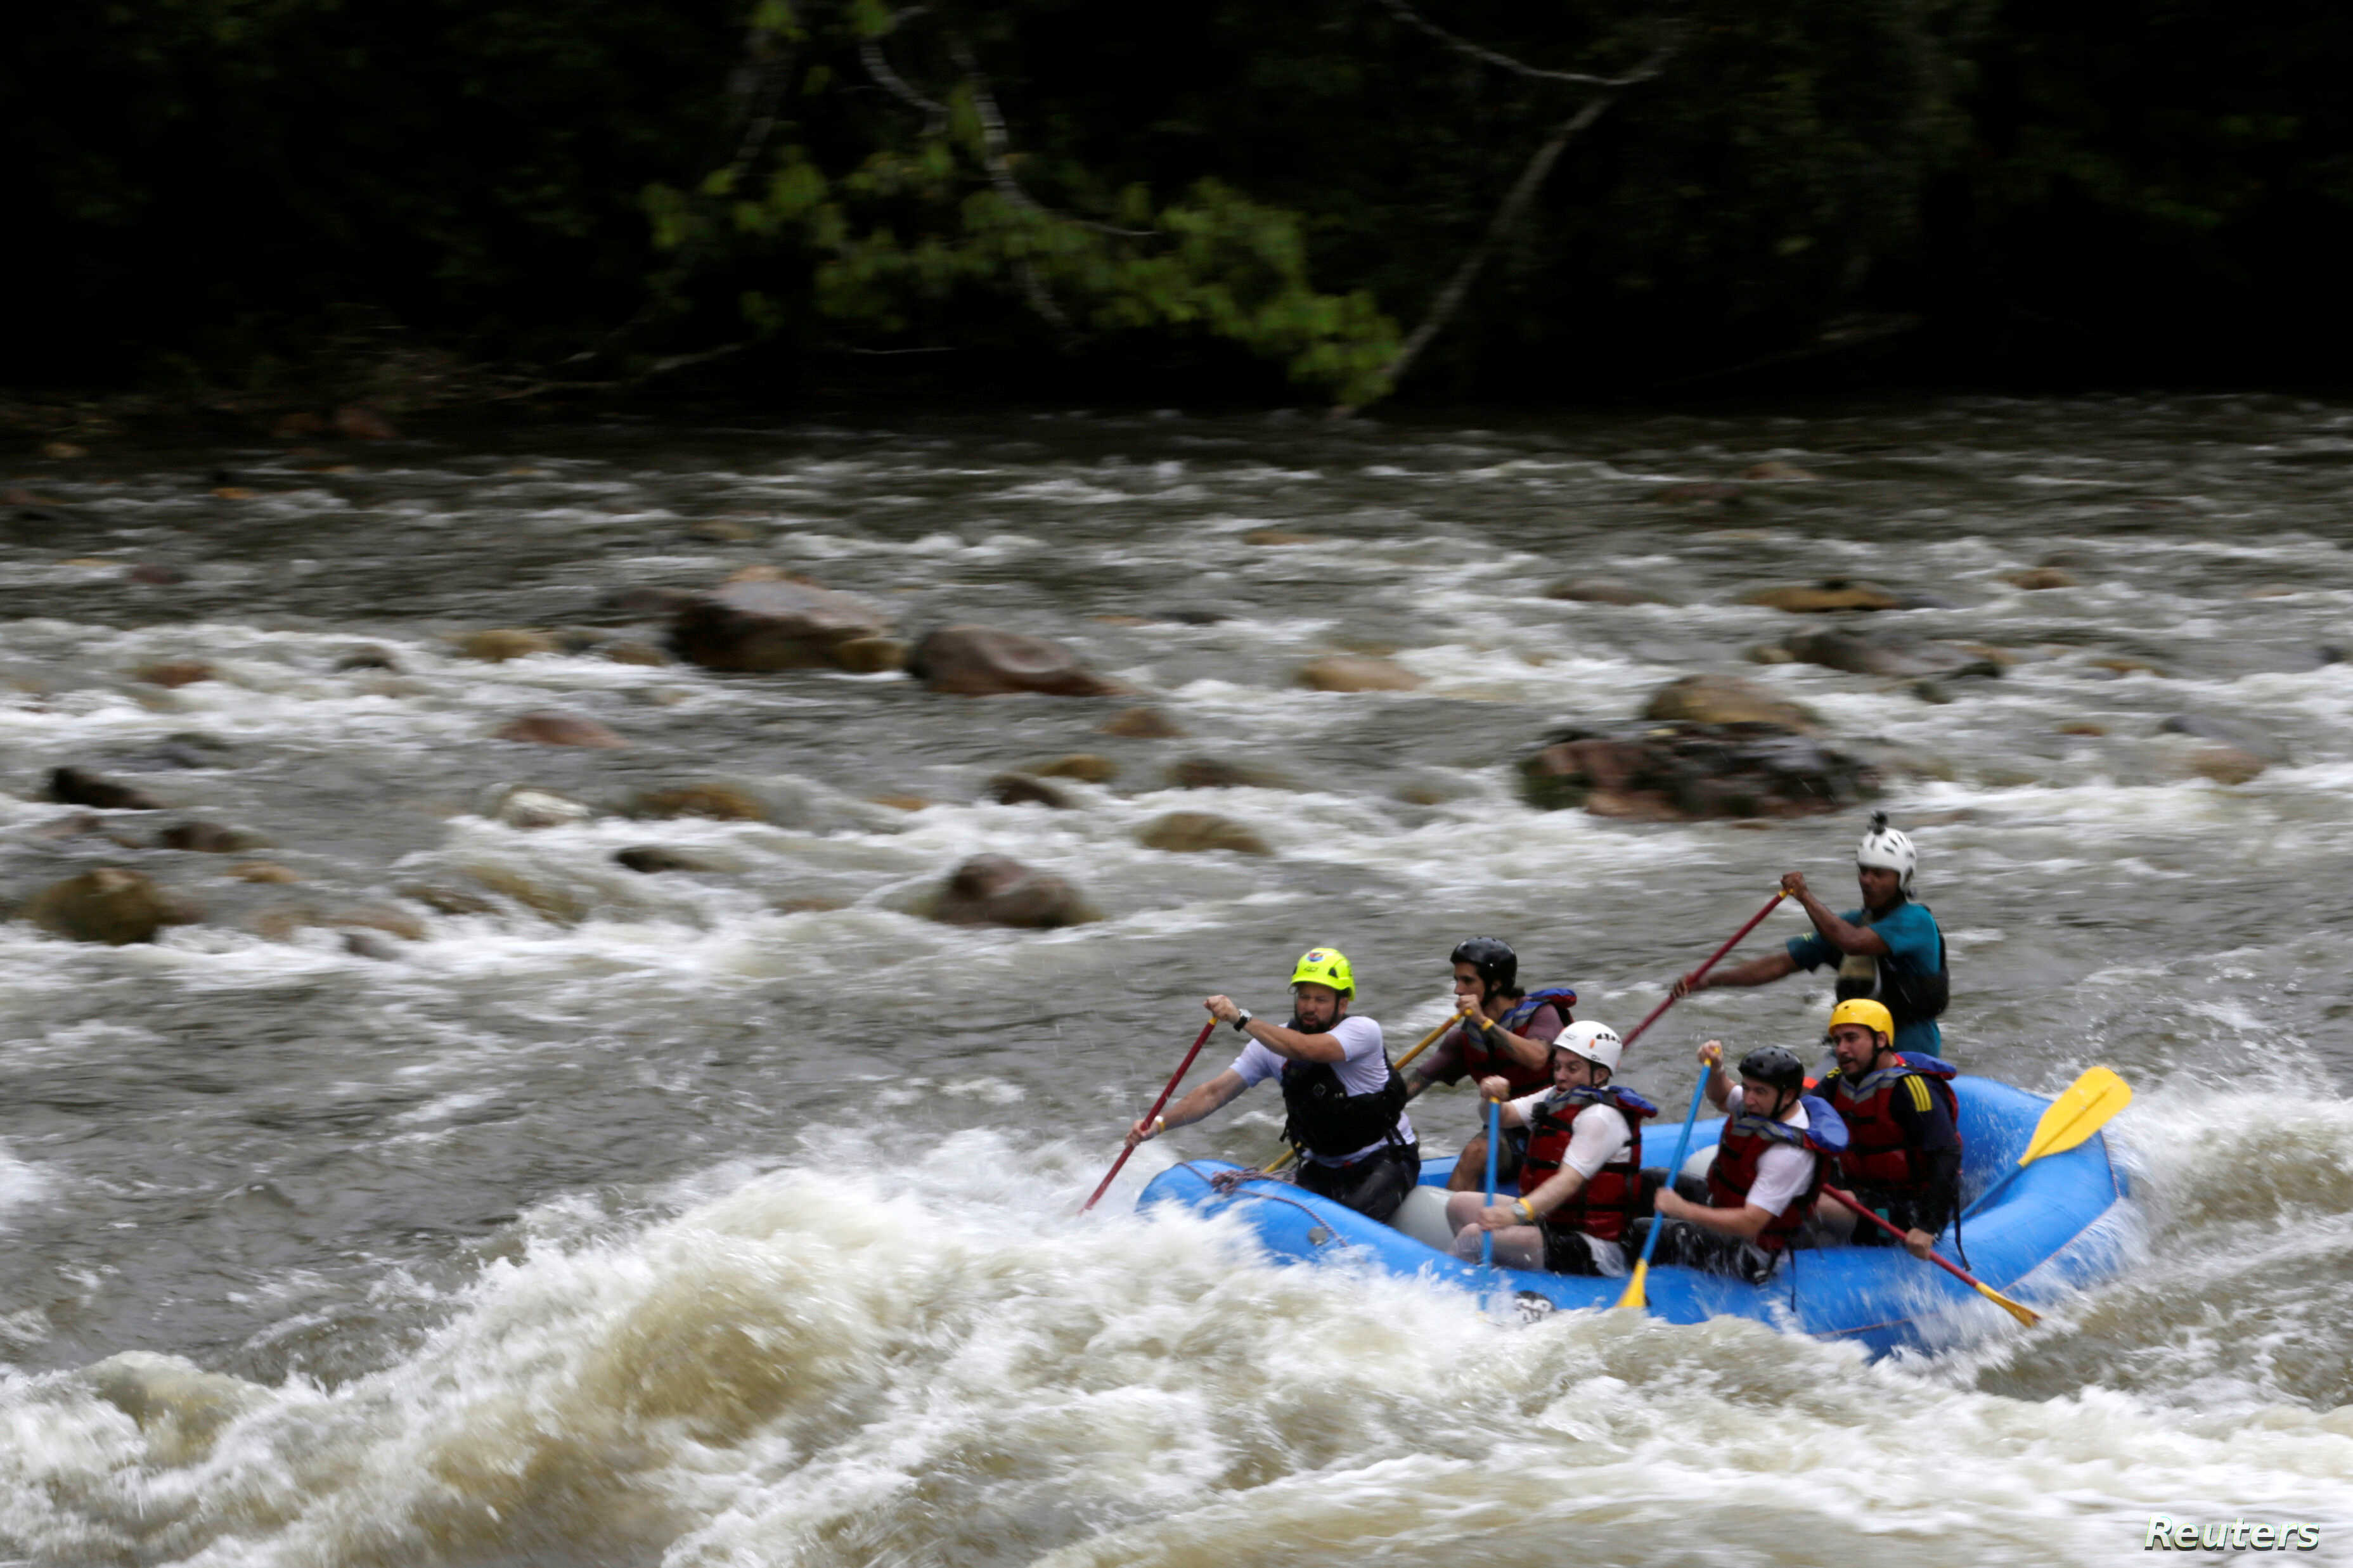 An former-FARC rebel guides a group of the press and government representatives down a river in the Caqueta provine in Miravalle, Colombia, Nov. 9, 2018.